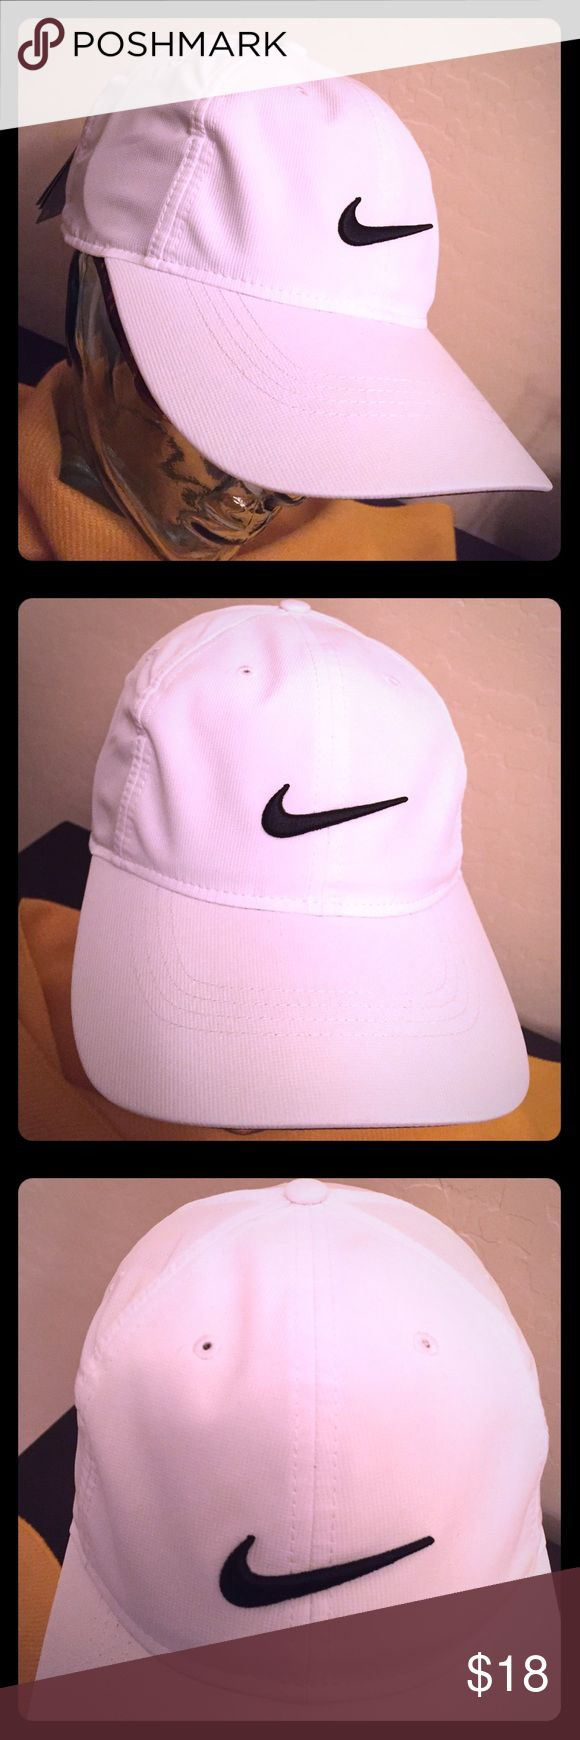 🆕 Nike Golf Adult Unisex Cap Authentic Nike Golf Adult Unisex Cap. OS. White with Embroidered Black Swoosh on the Front & Back. Adjustable Velcro Back. Dri-Fit. Vented. White Button Top. Red Bill. Underbill is Black with White Trim. Partially Lined in Black too. Body & Lining are 100% Polyester. Brand New. Excellent Condition. No Trades. See Other Cool Hats in this Closet. 👌🏽😎👌🏽 Nike Accessories Hats